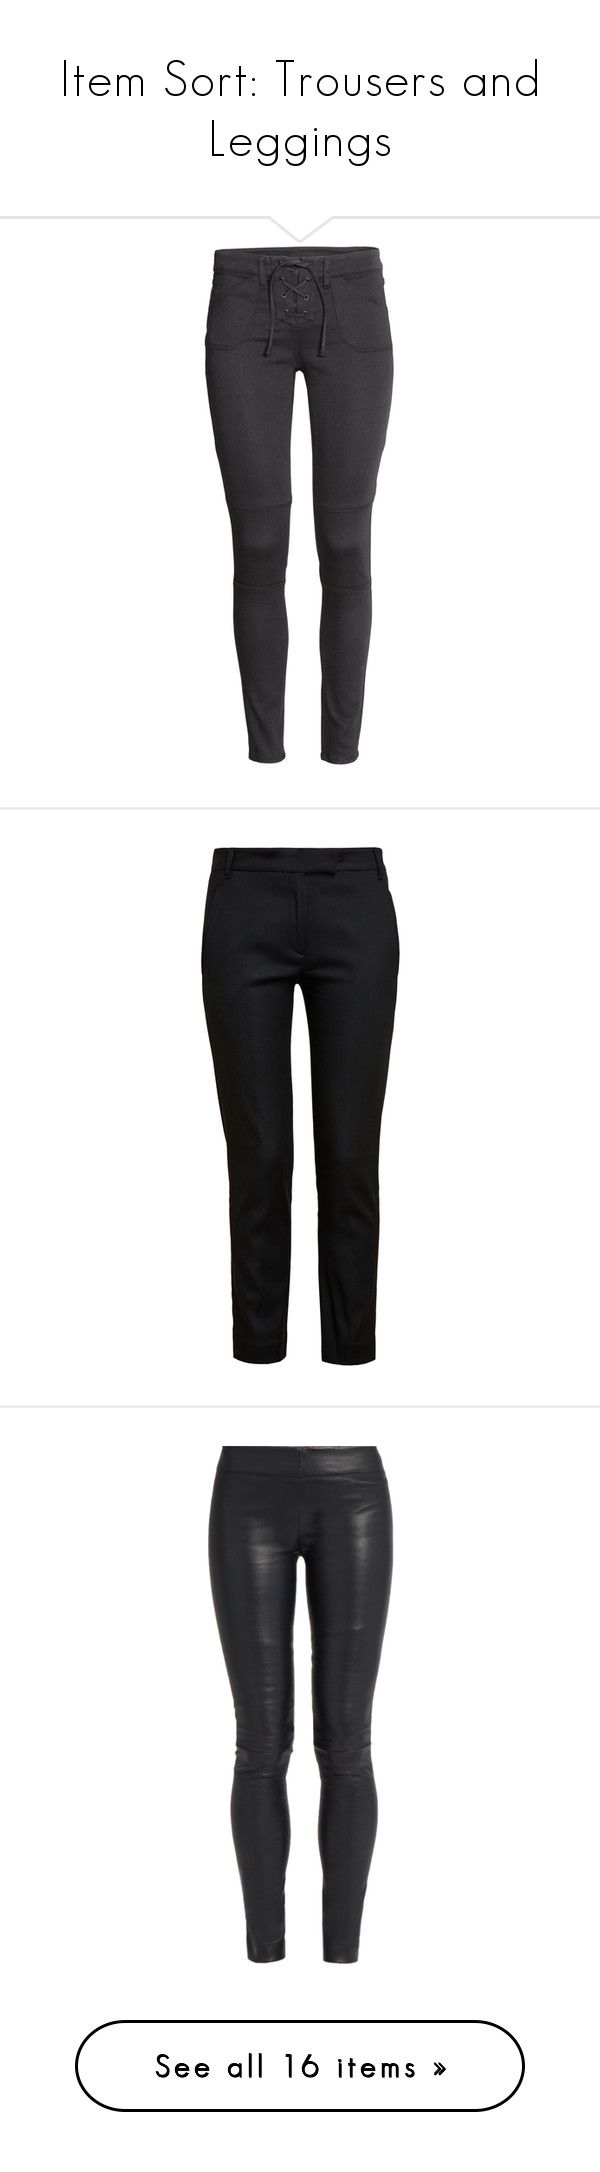 """Item Sort: Trousers and Leggings"" by quiche ❤ liked on Polyvore featuring pants, jeans, black, bottoms, trousers, twill trousers, h&m pants, slim leg pants, lace up pants and h&m trousers"